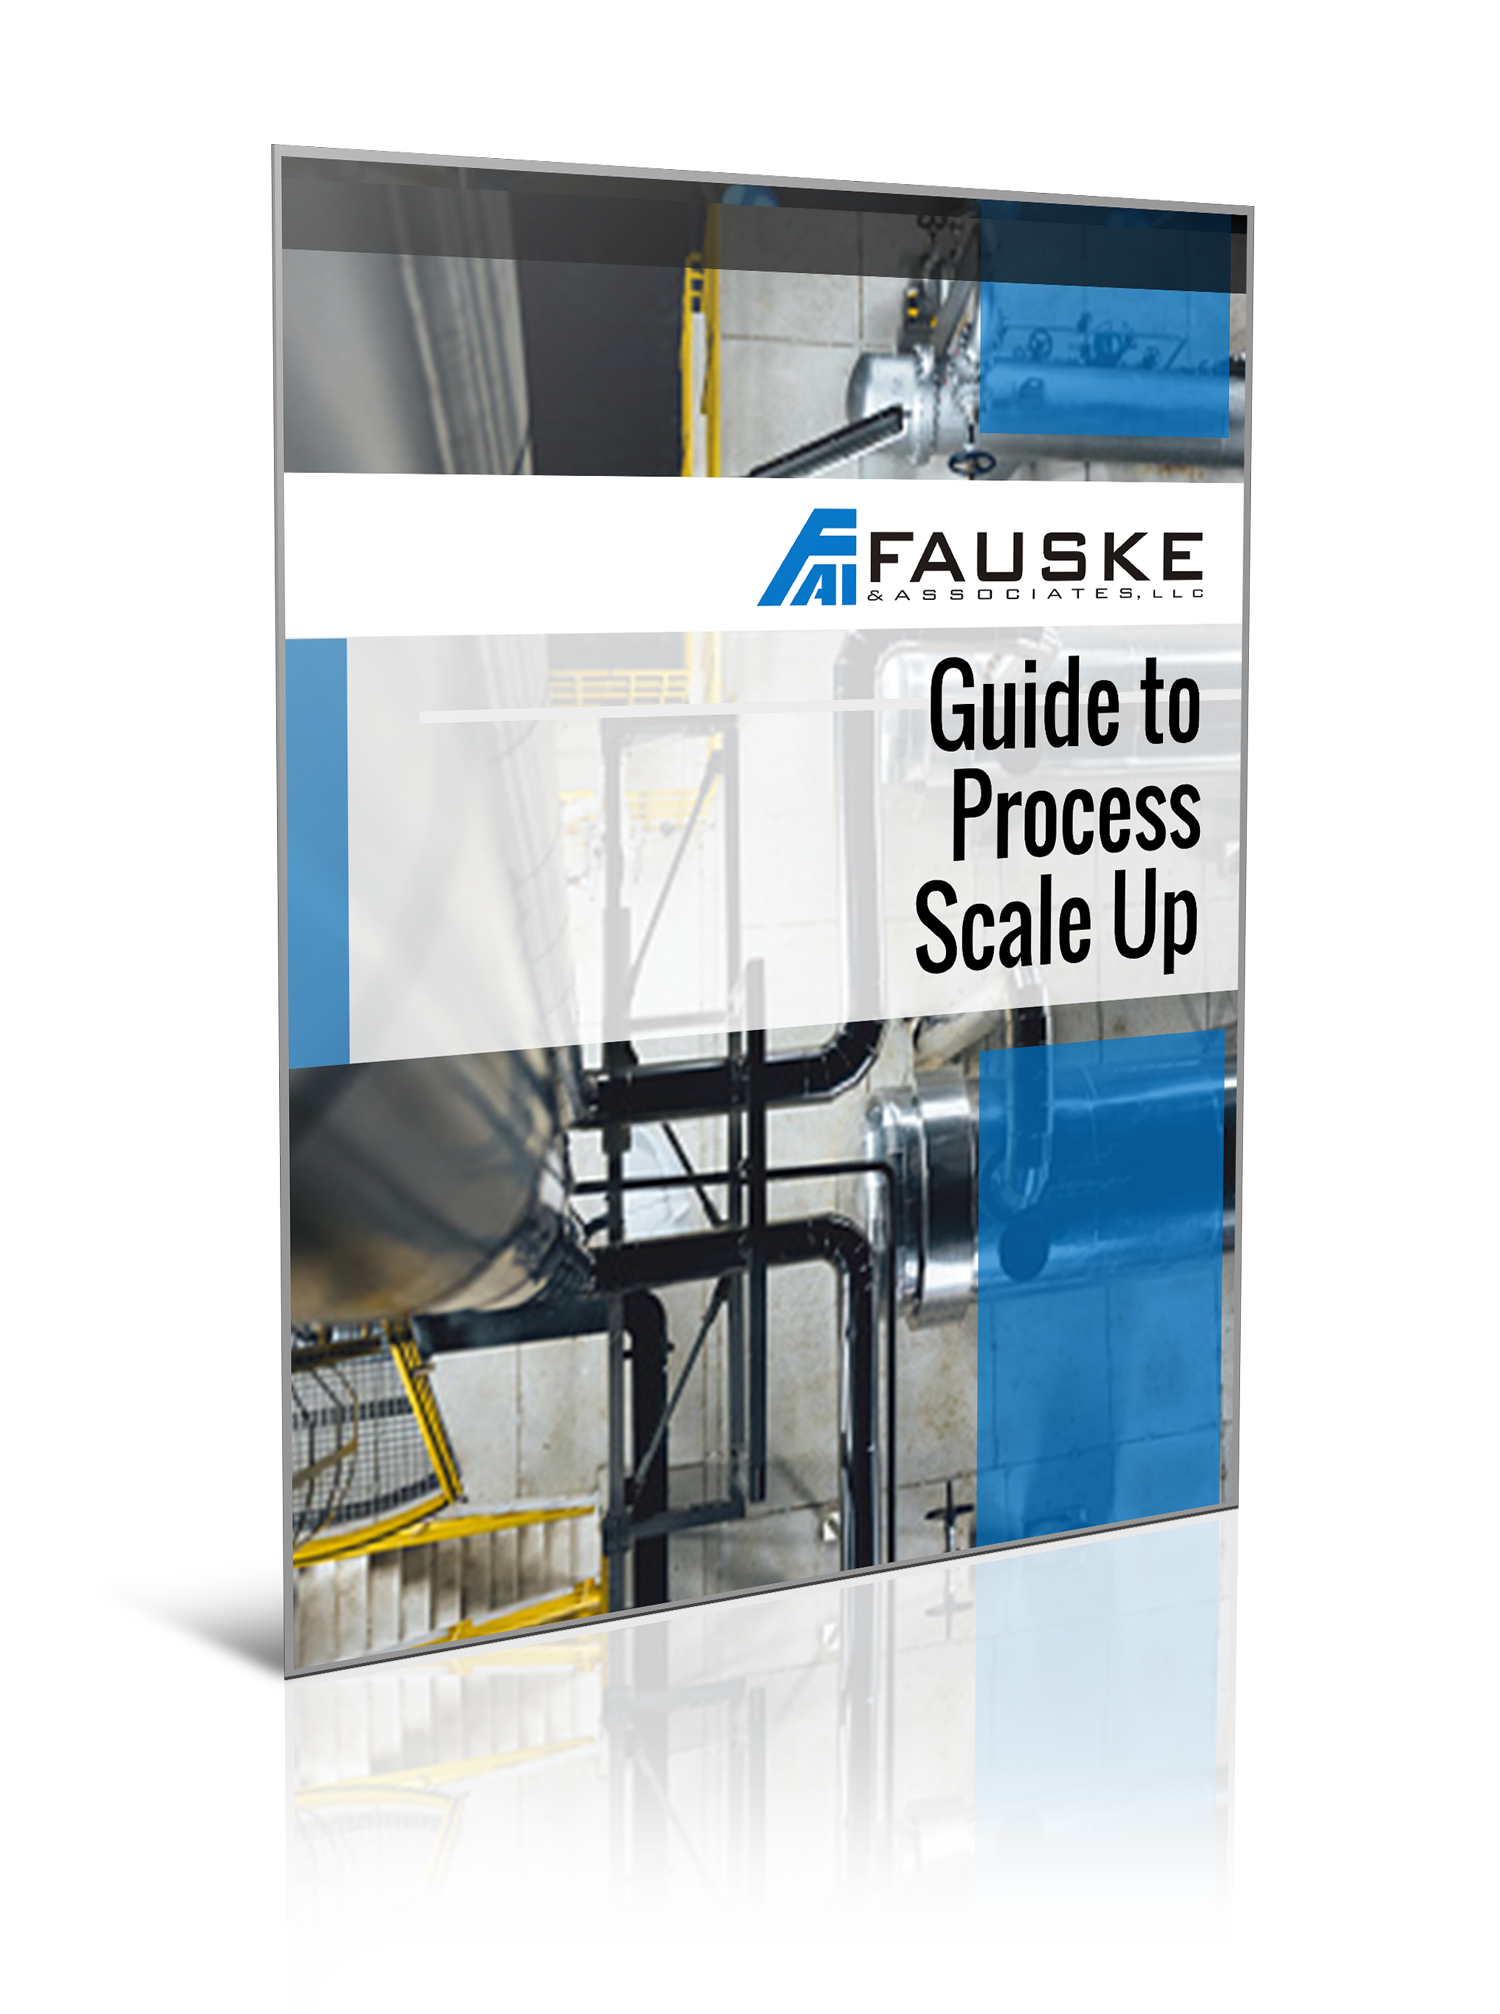 FAI Guide to Process Scale Up